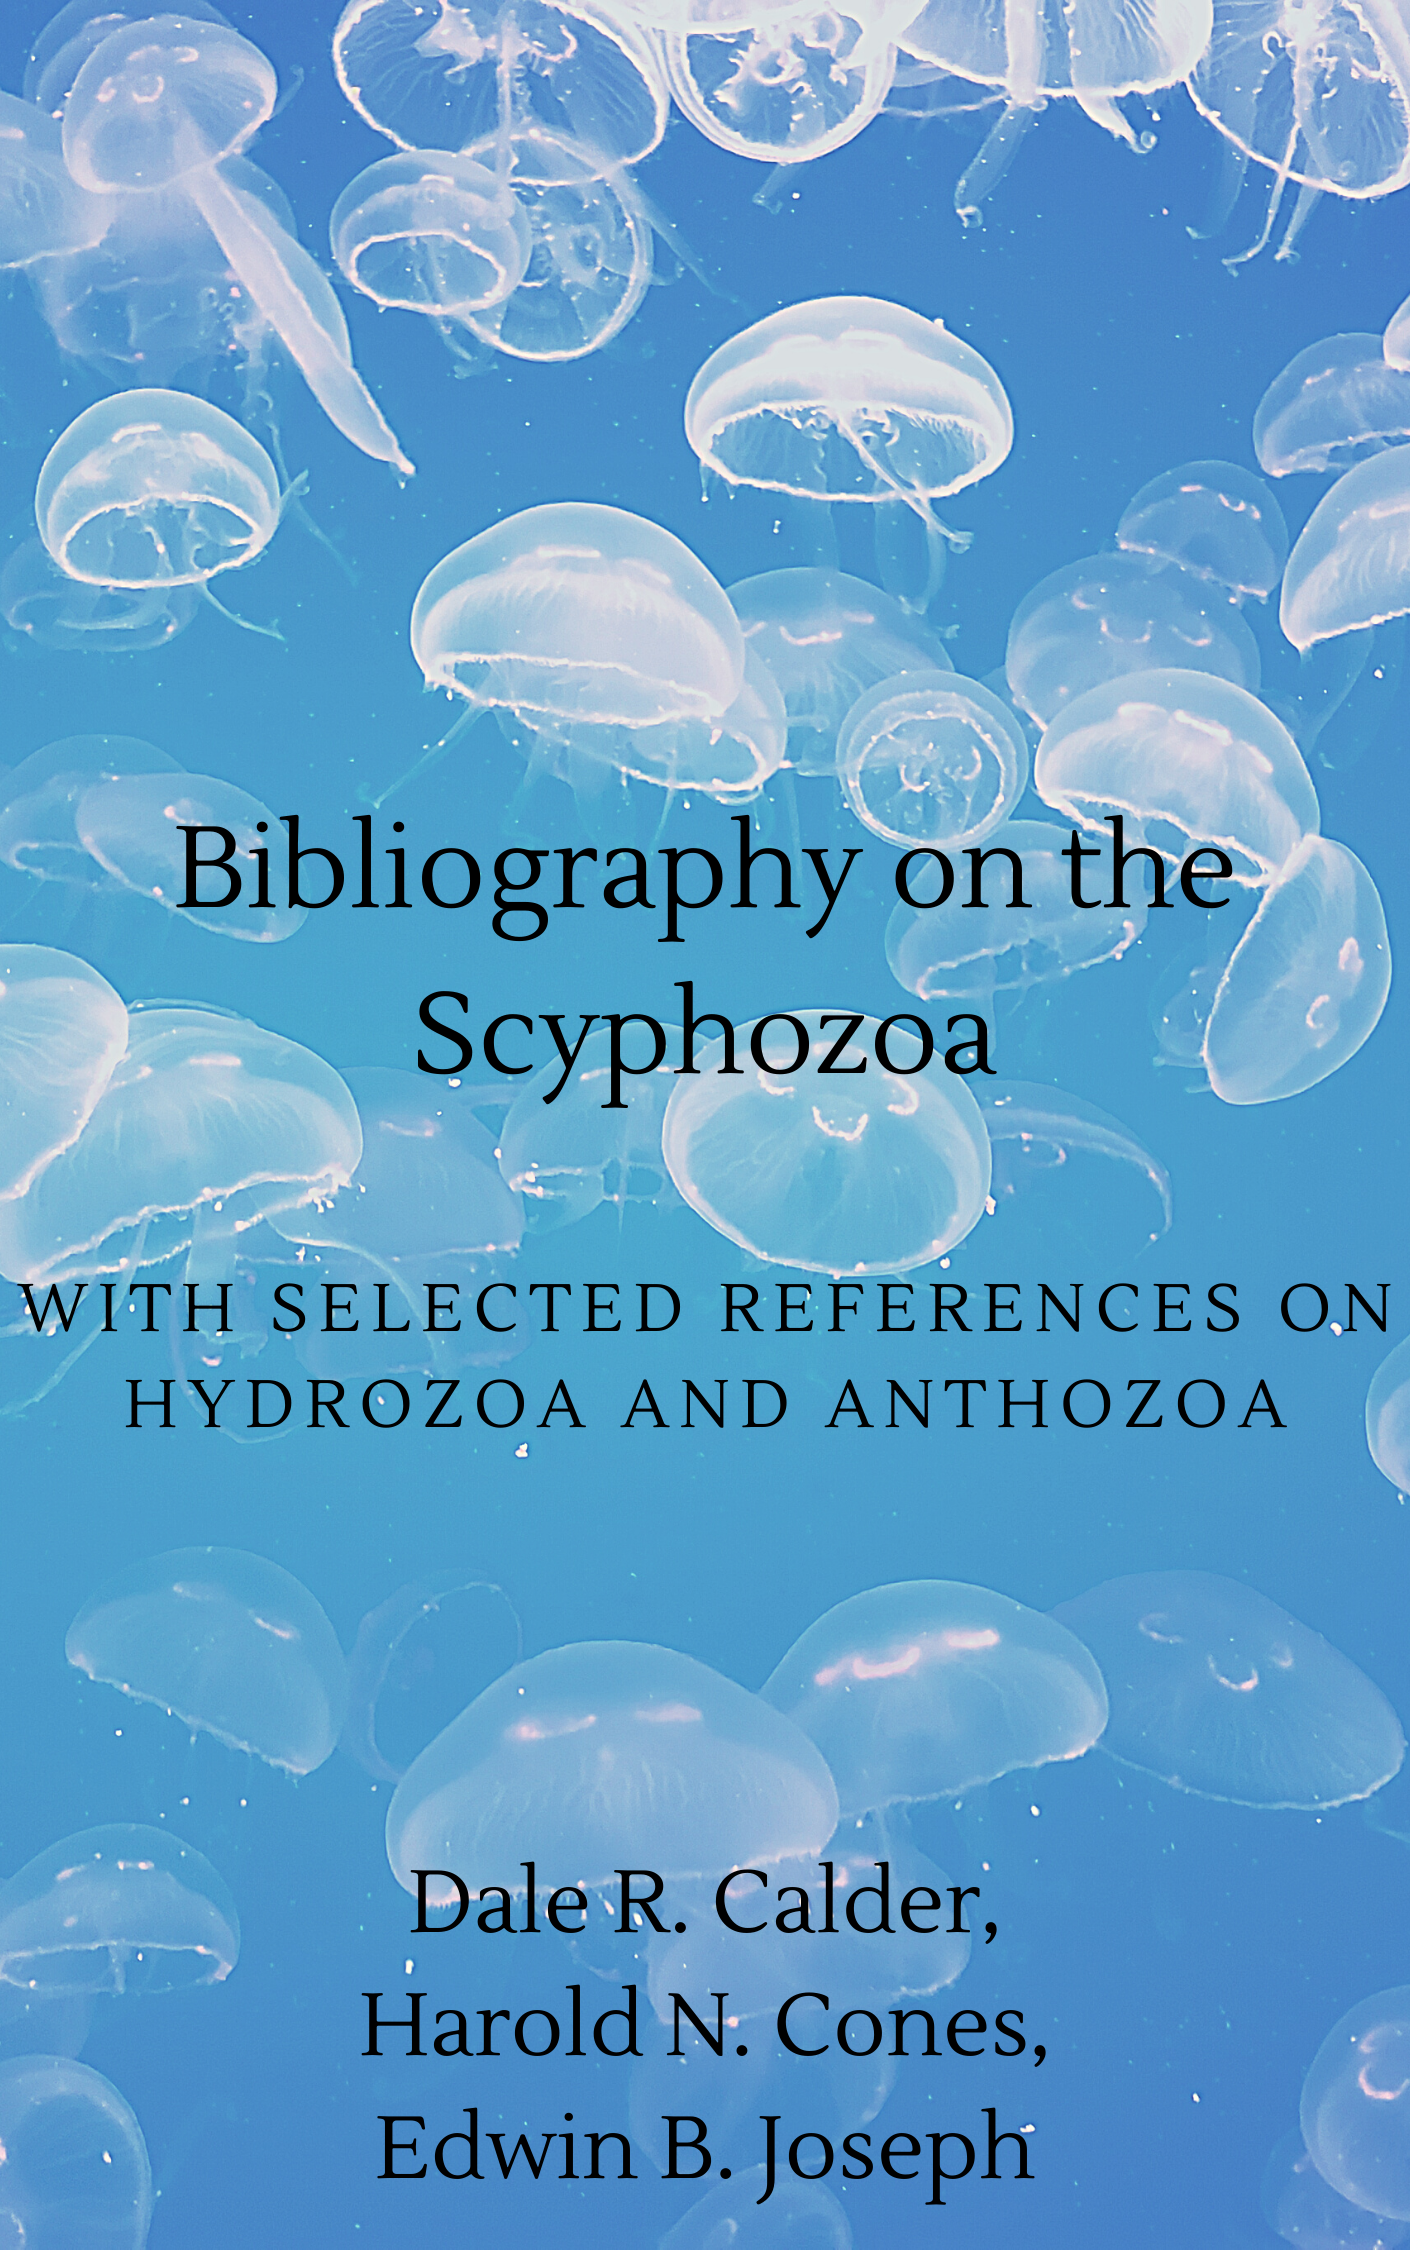 Bibliography on the Scyphozoa with Selected References on Hydrozoa and Anthozoa